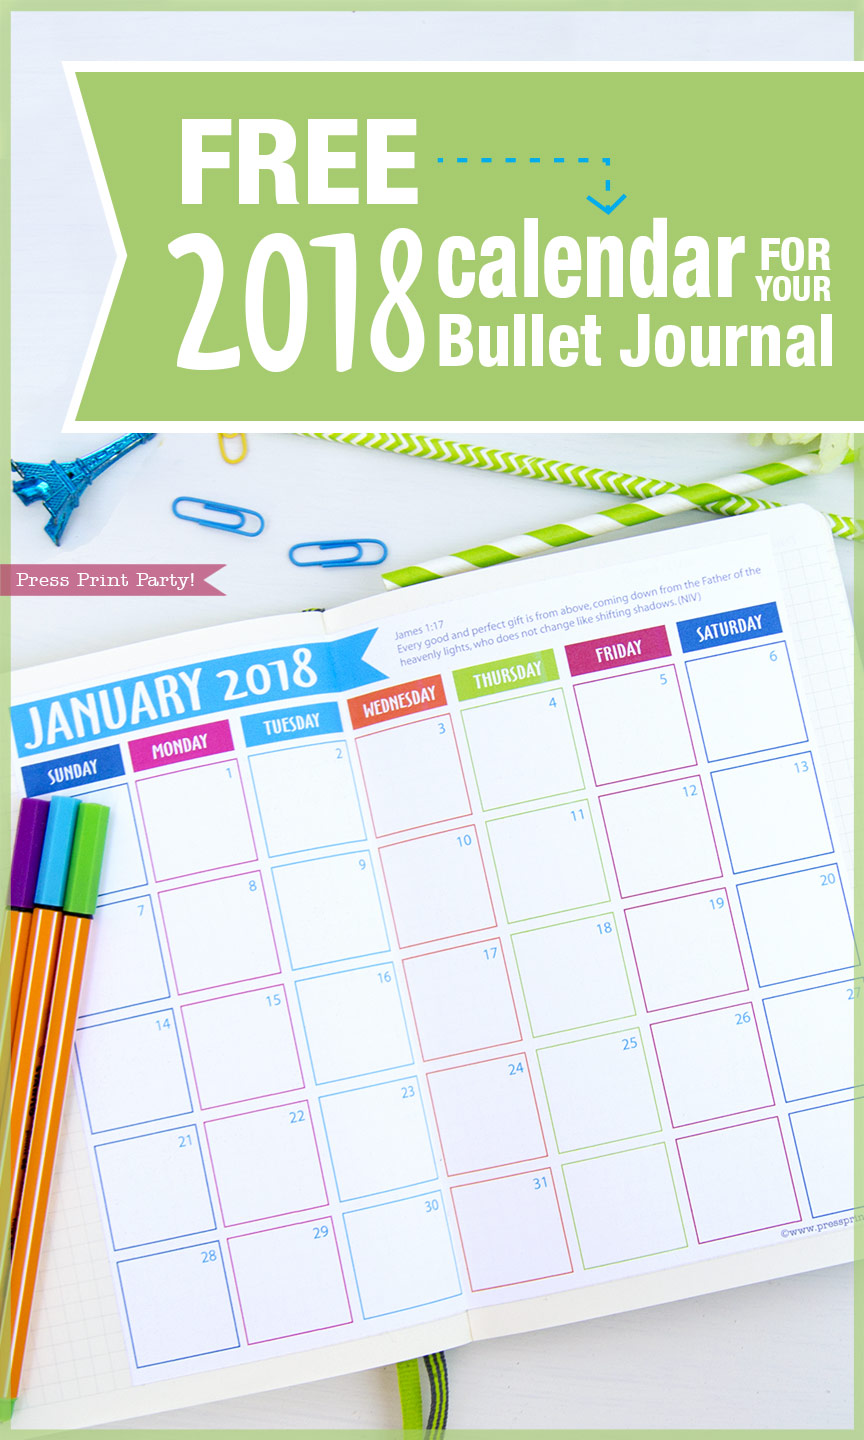 FREE 2018 Calendar For You Bullet Journal By Press Print